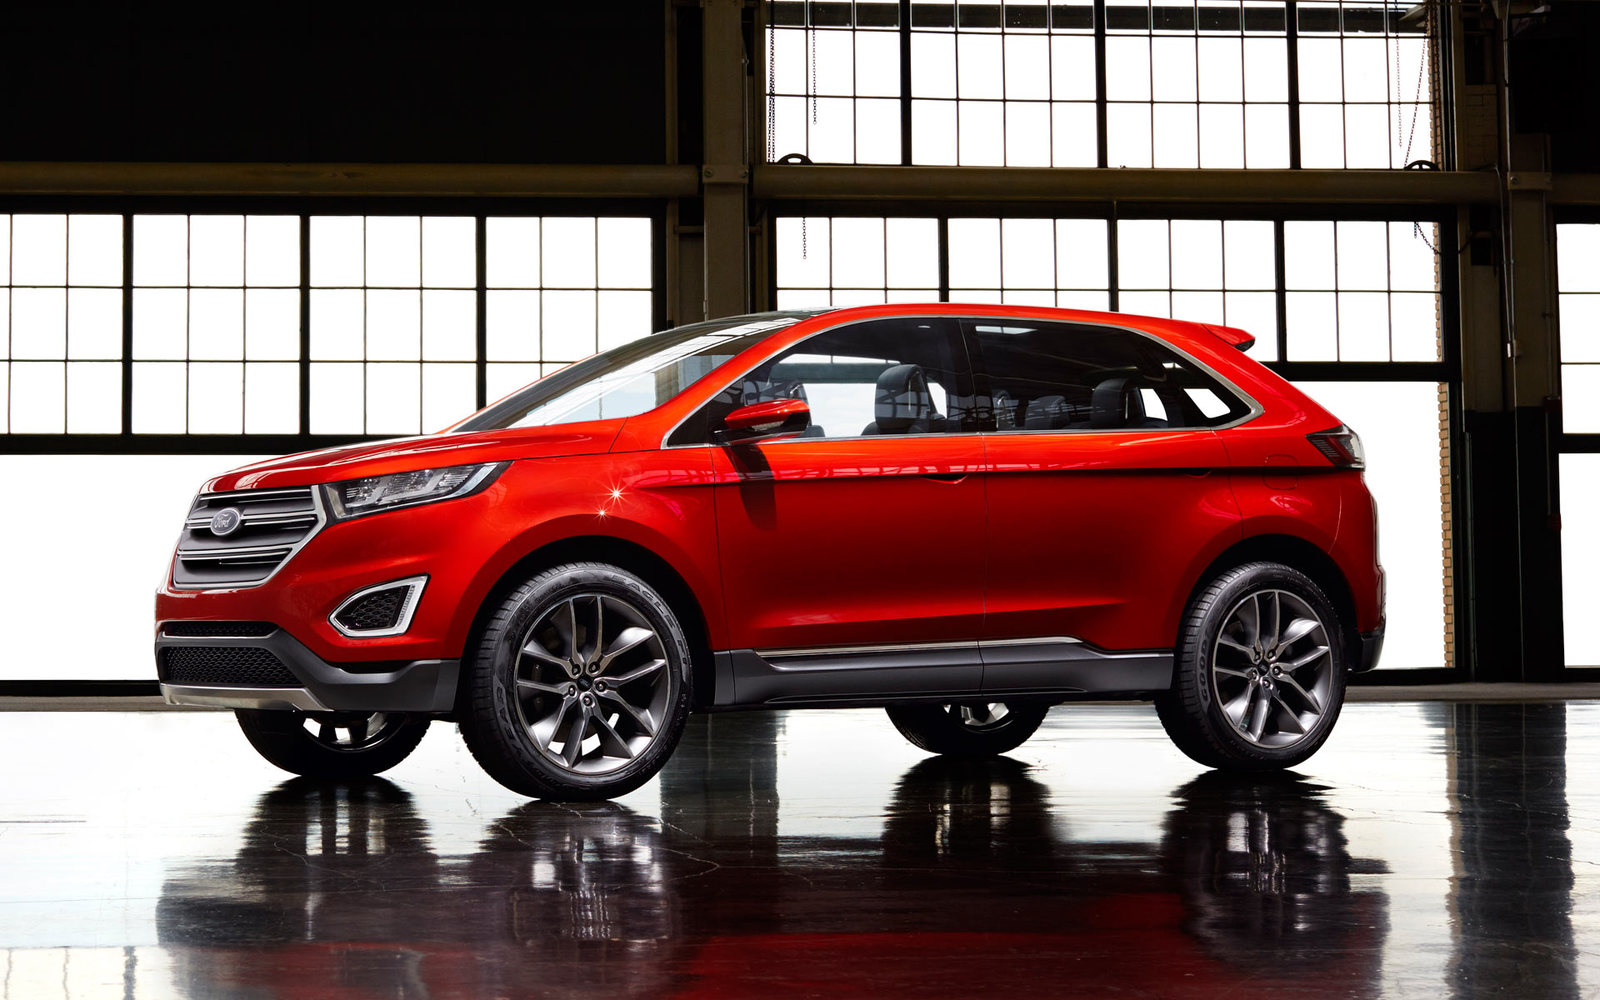 Ford Edge Concept in Genf